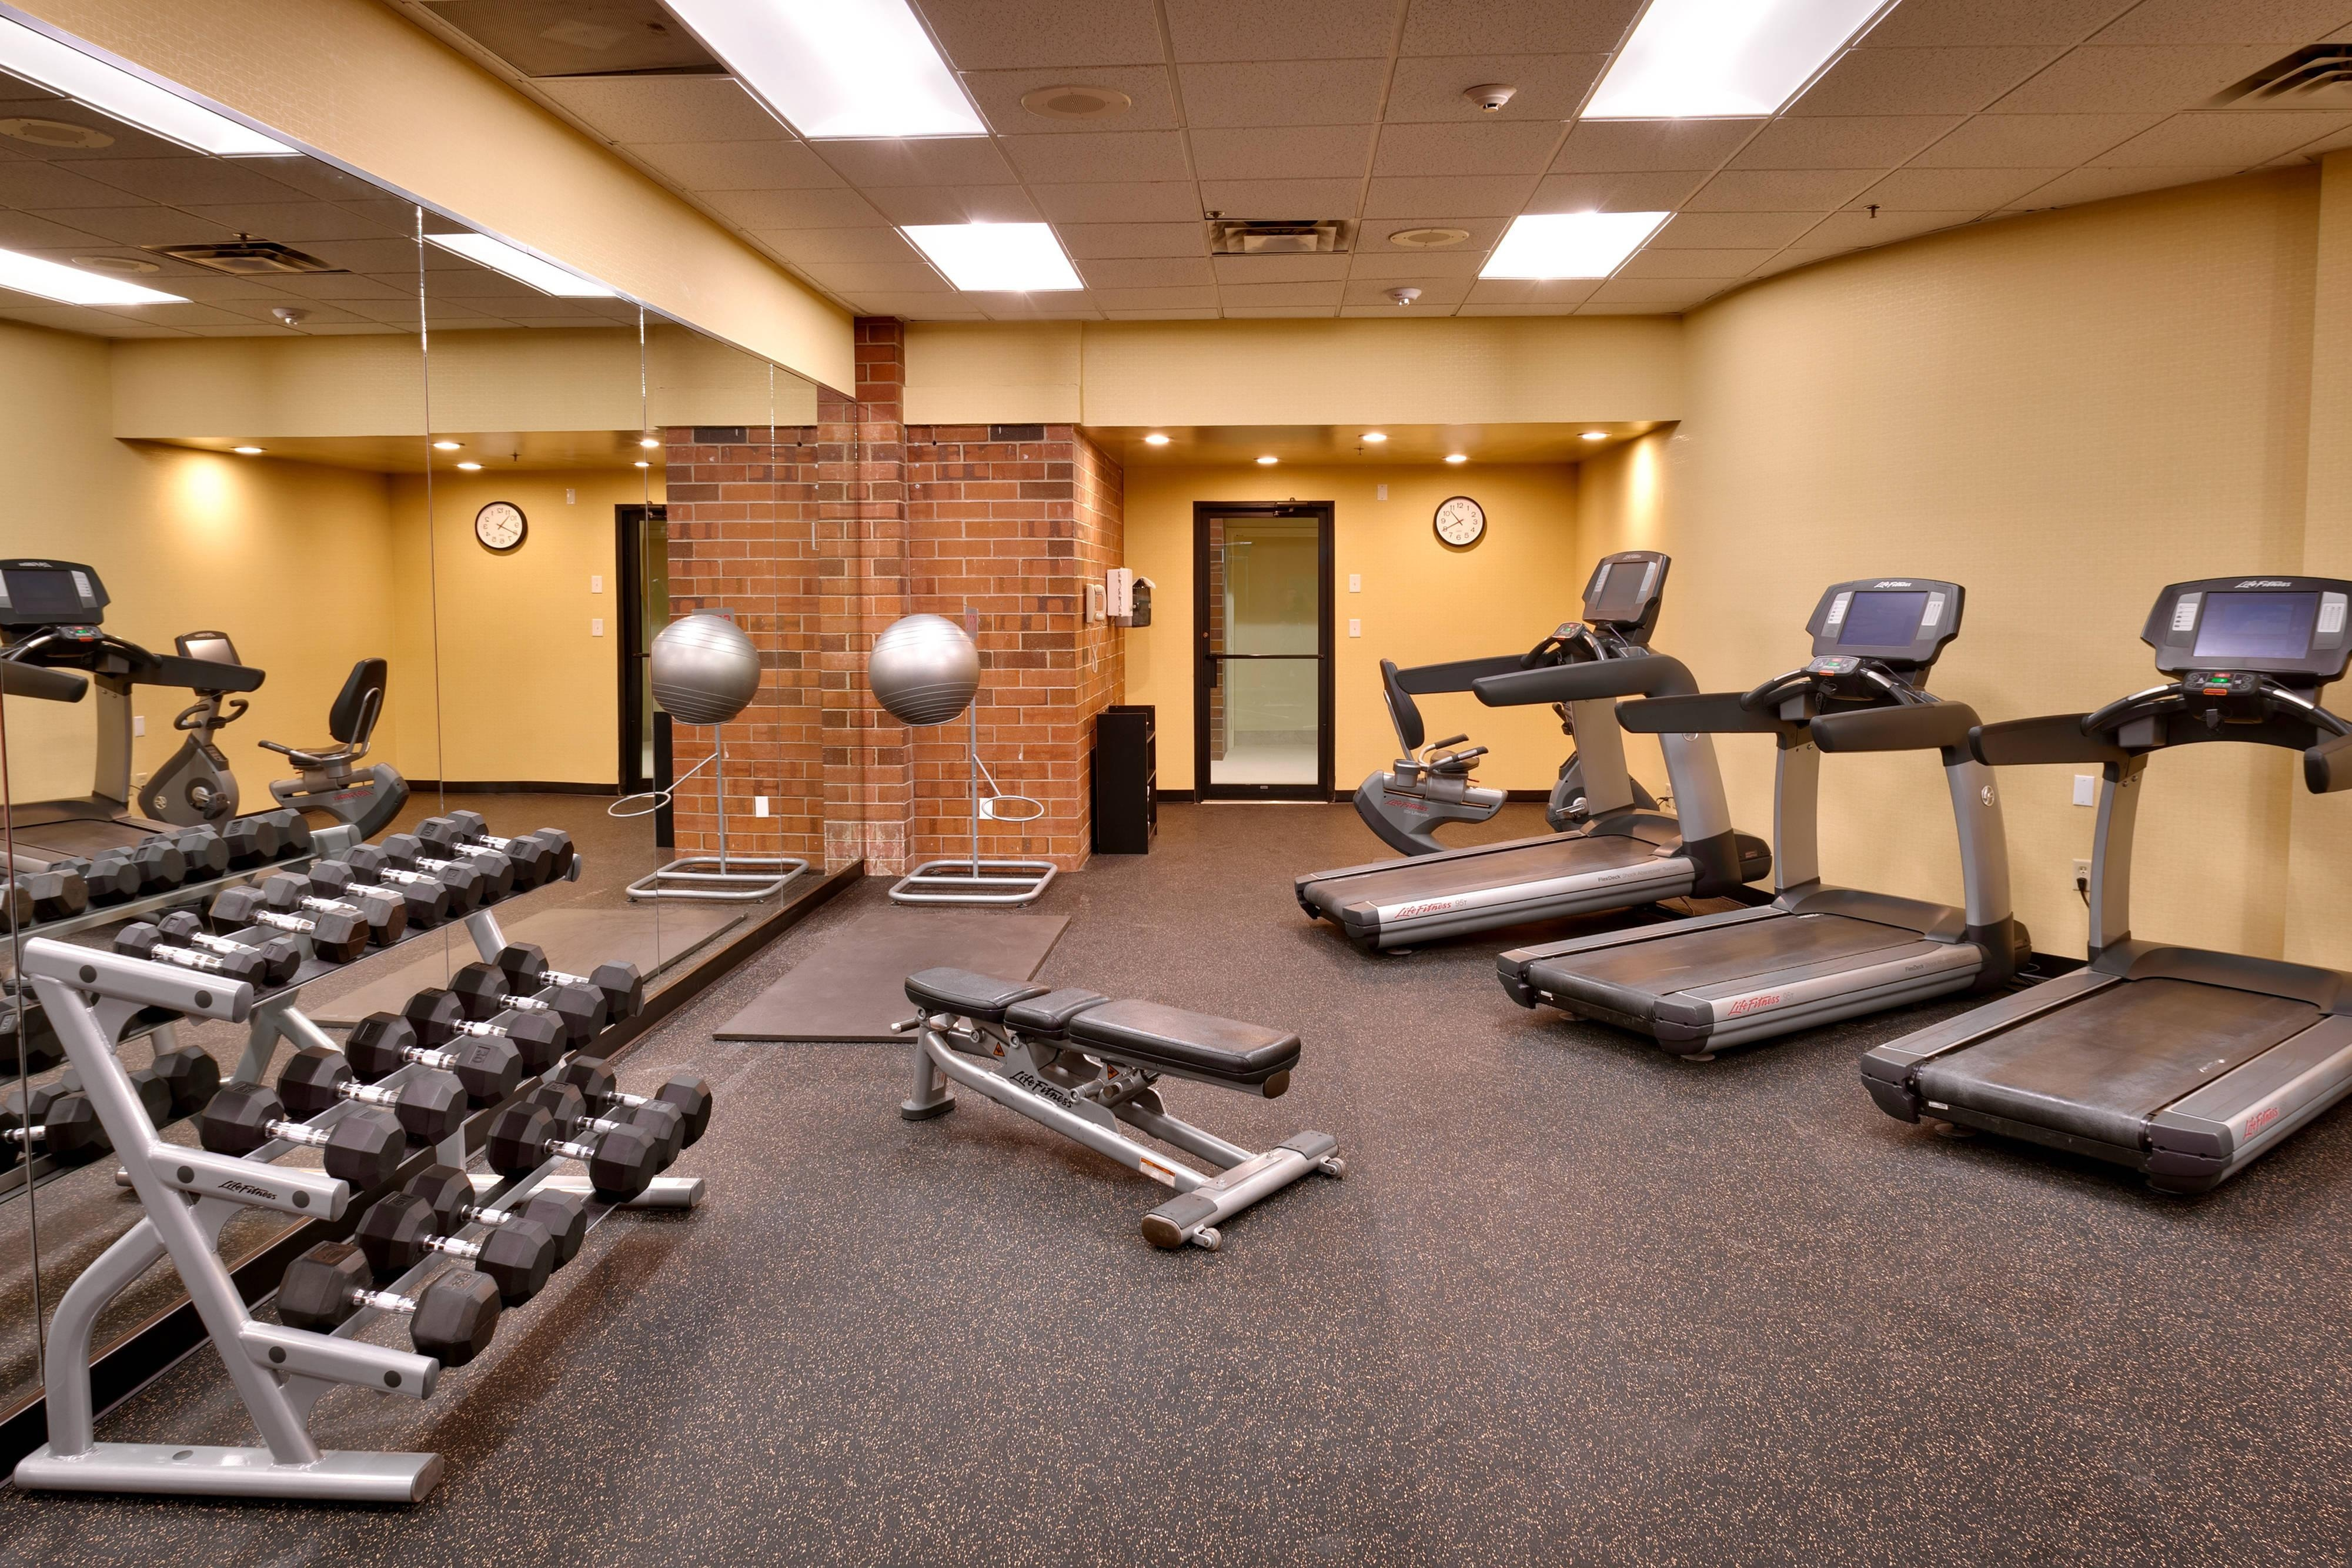 Courtyard Hotel Gym